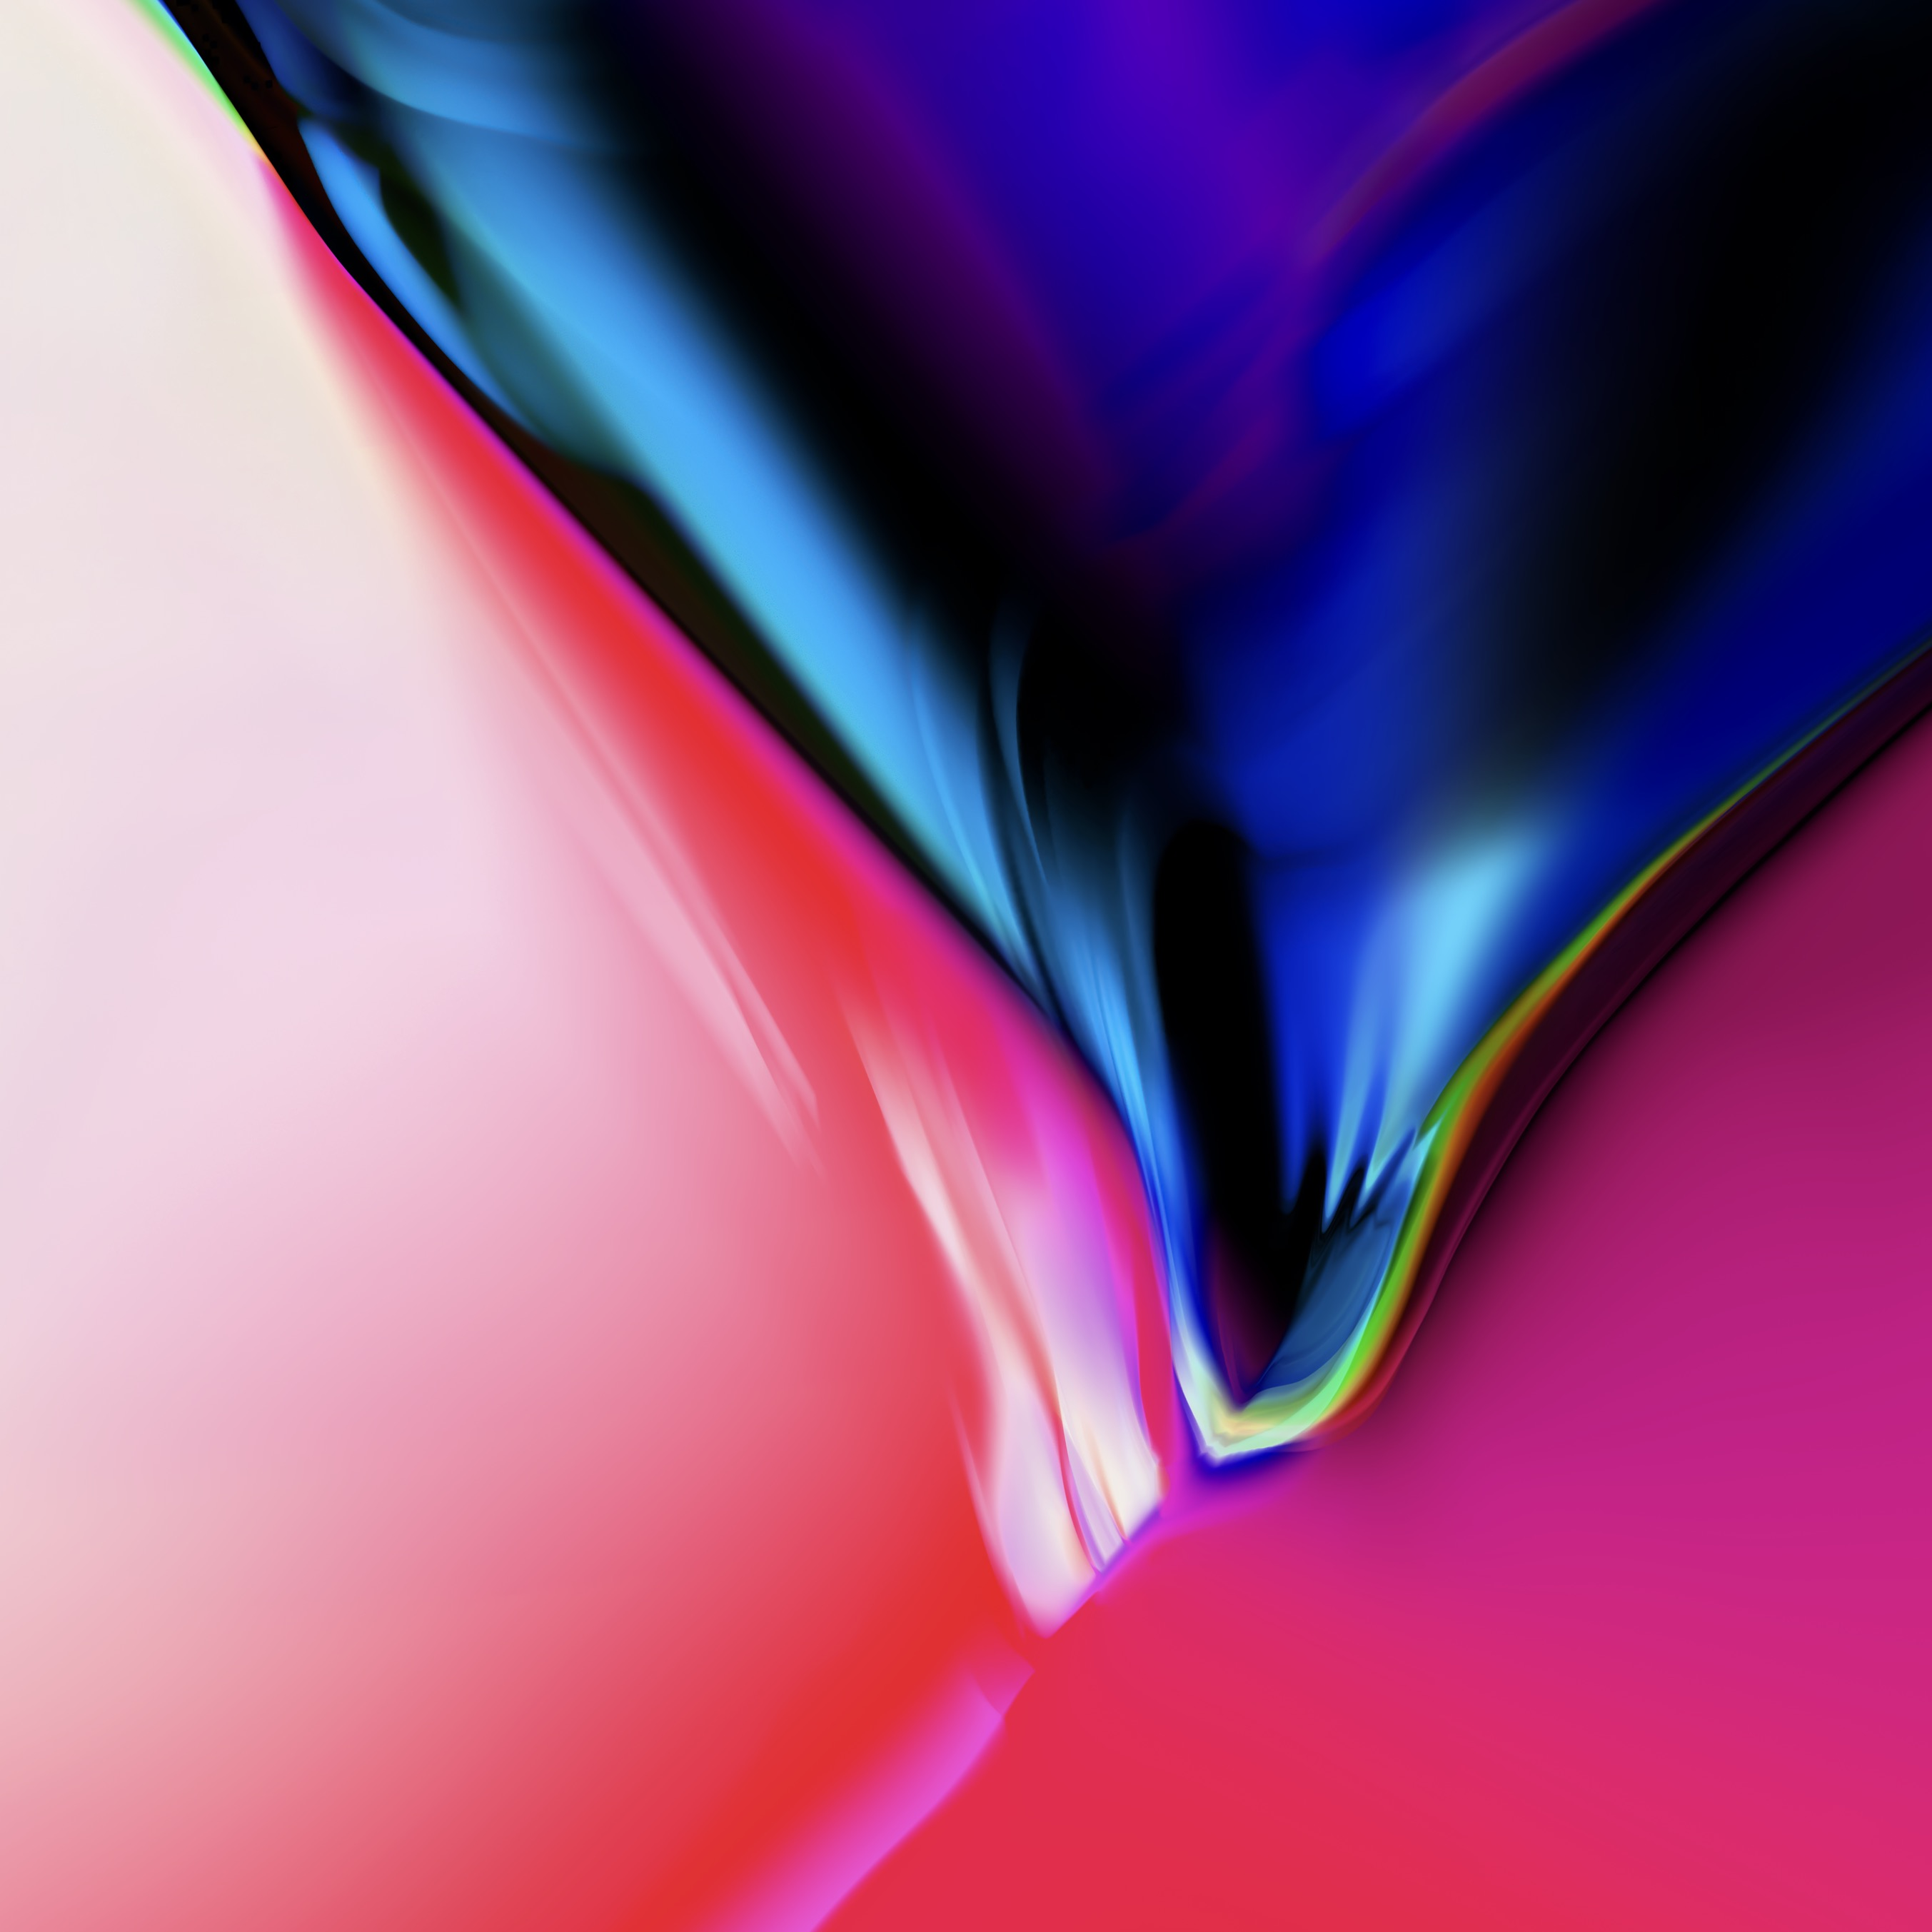 OFFICIAL] Download iOS 11 Wallpapers (iPhone 8 Wallpapers)